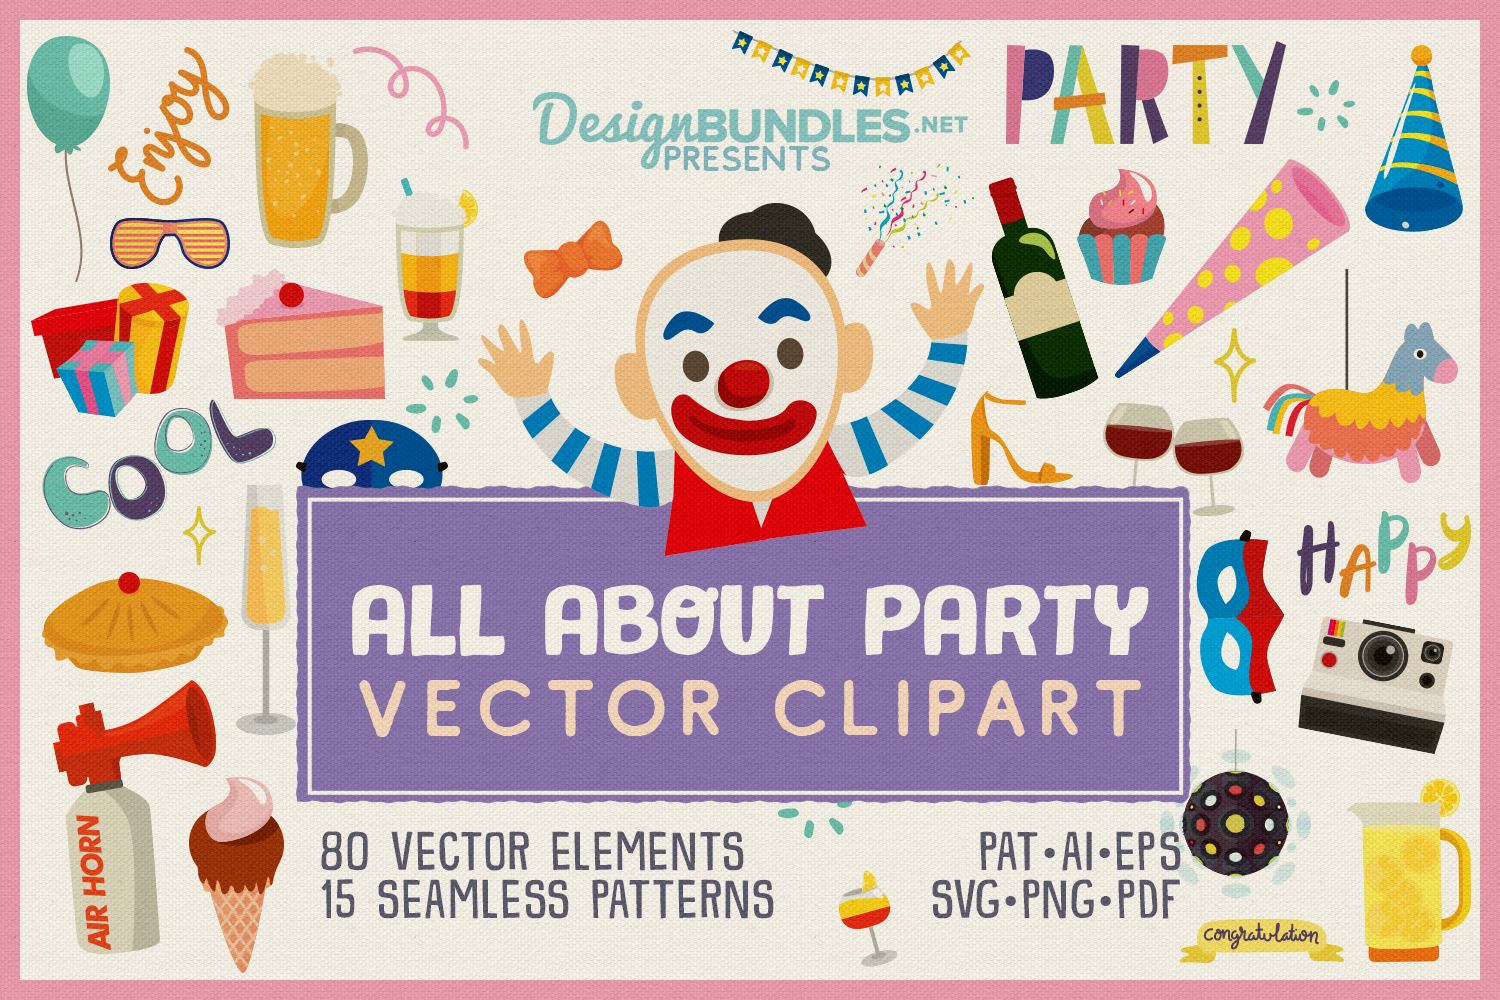 80 All About Party Vector Clipart & Seamless Patterns example image 1